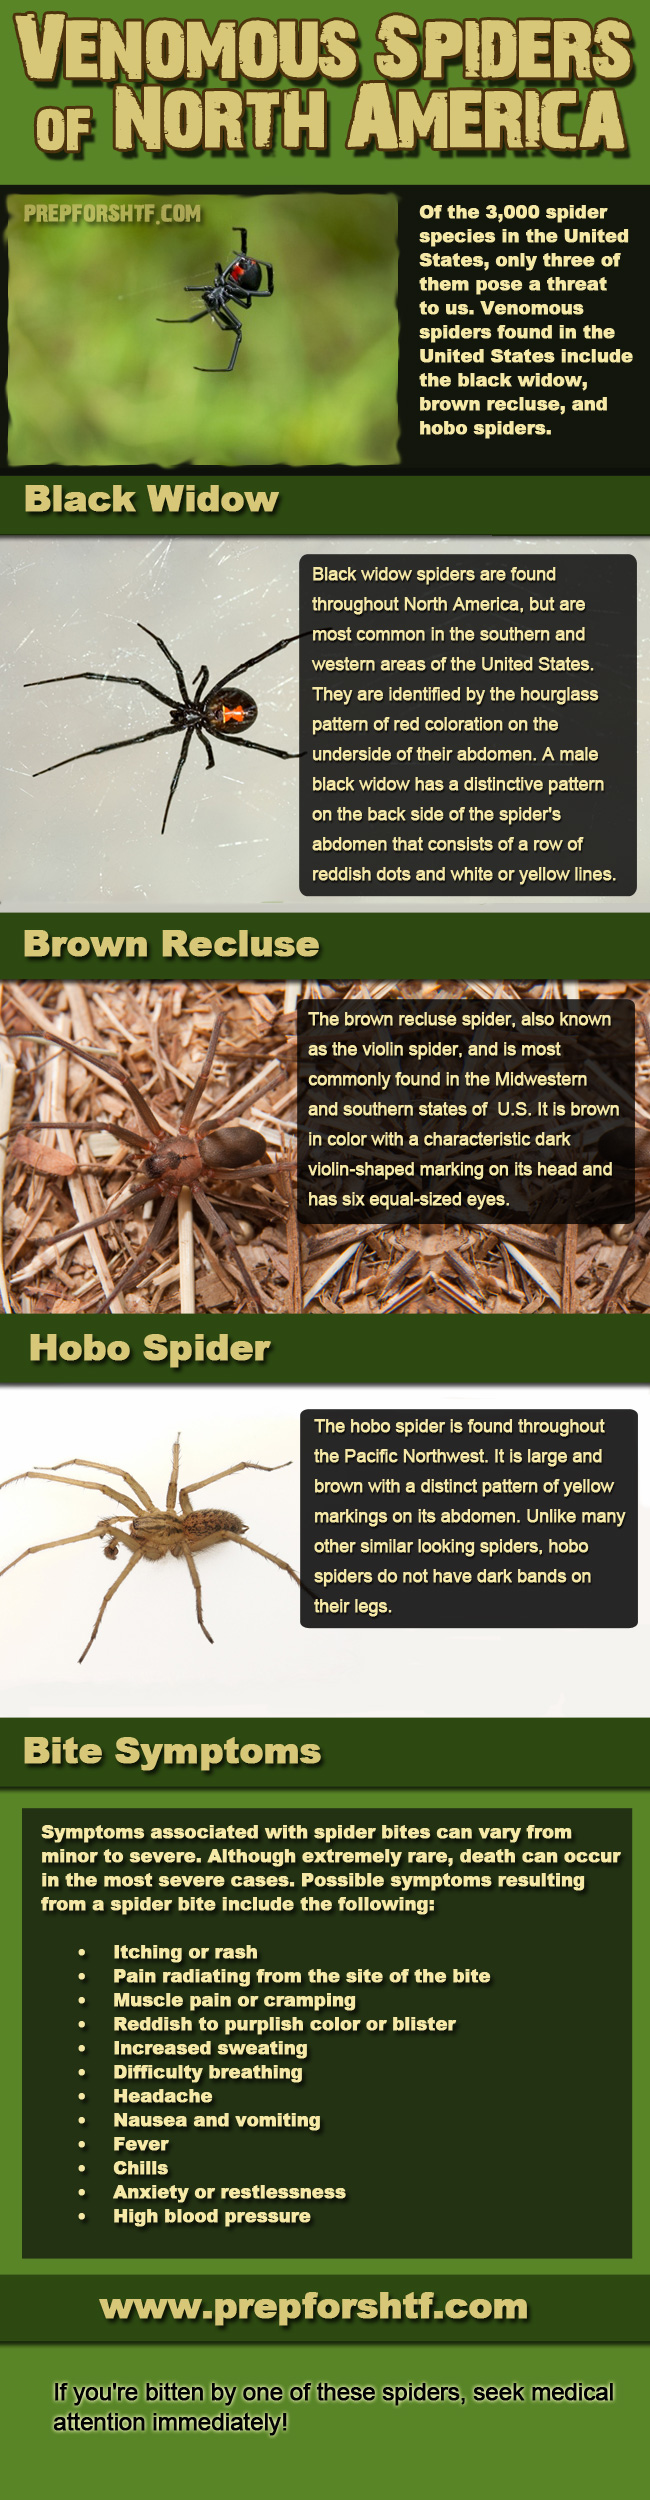 Venomous Spiders of The USA